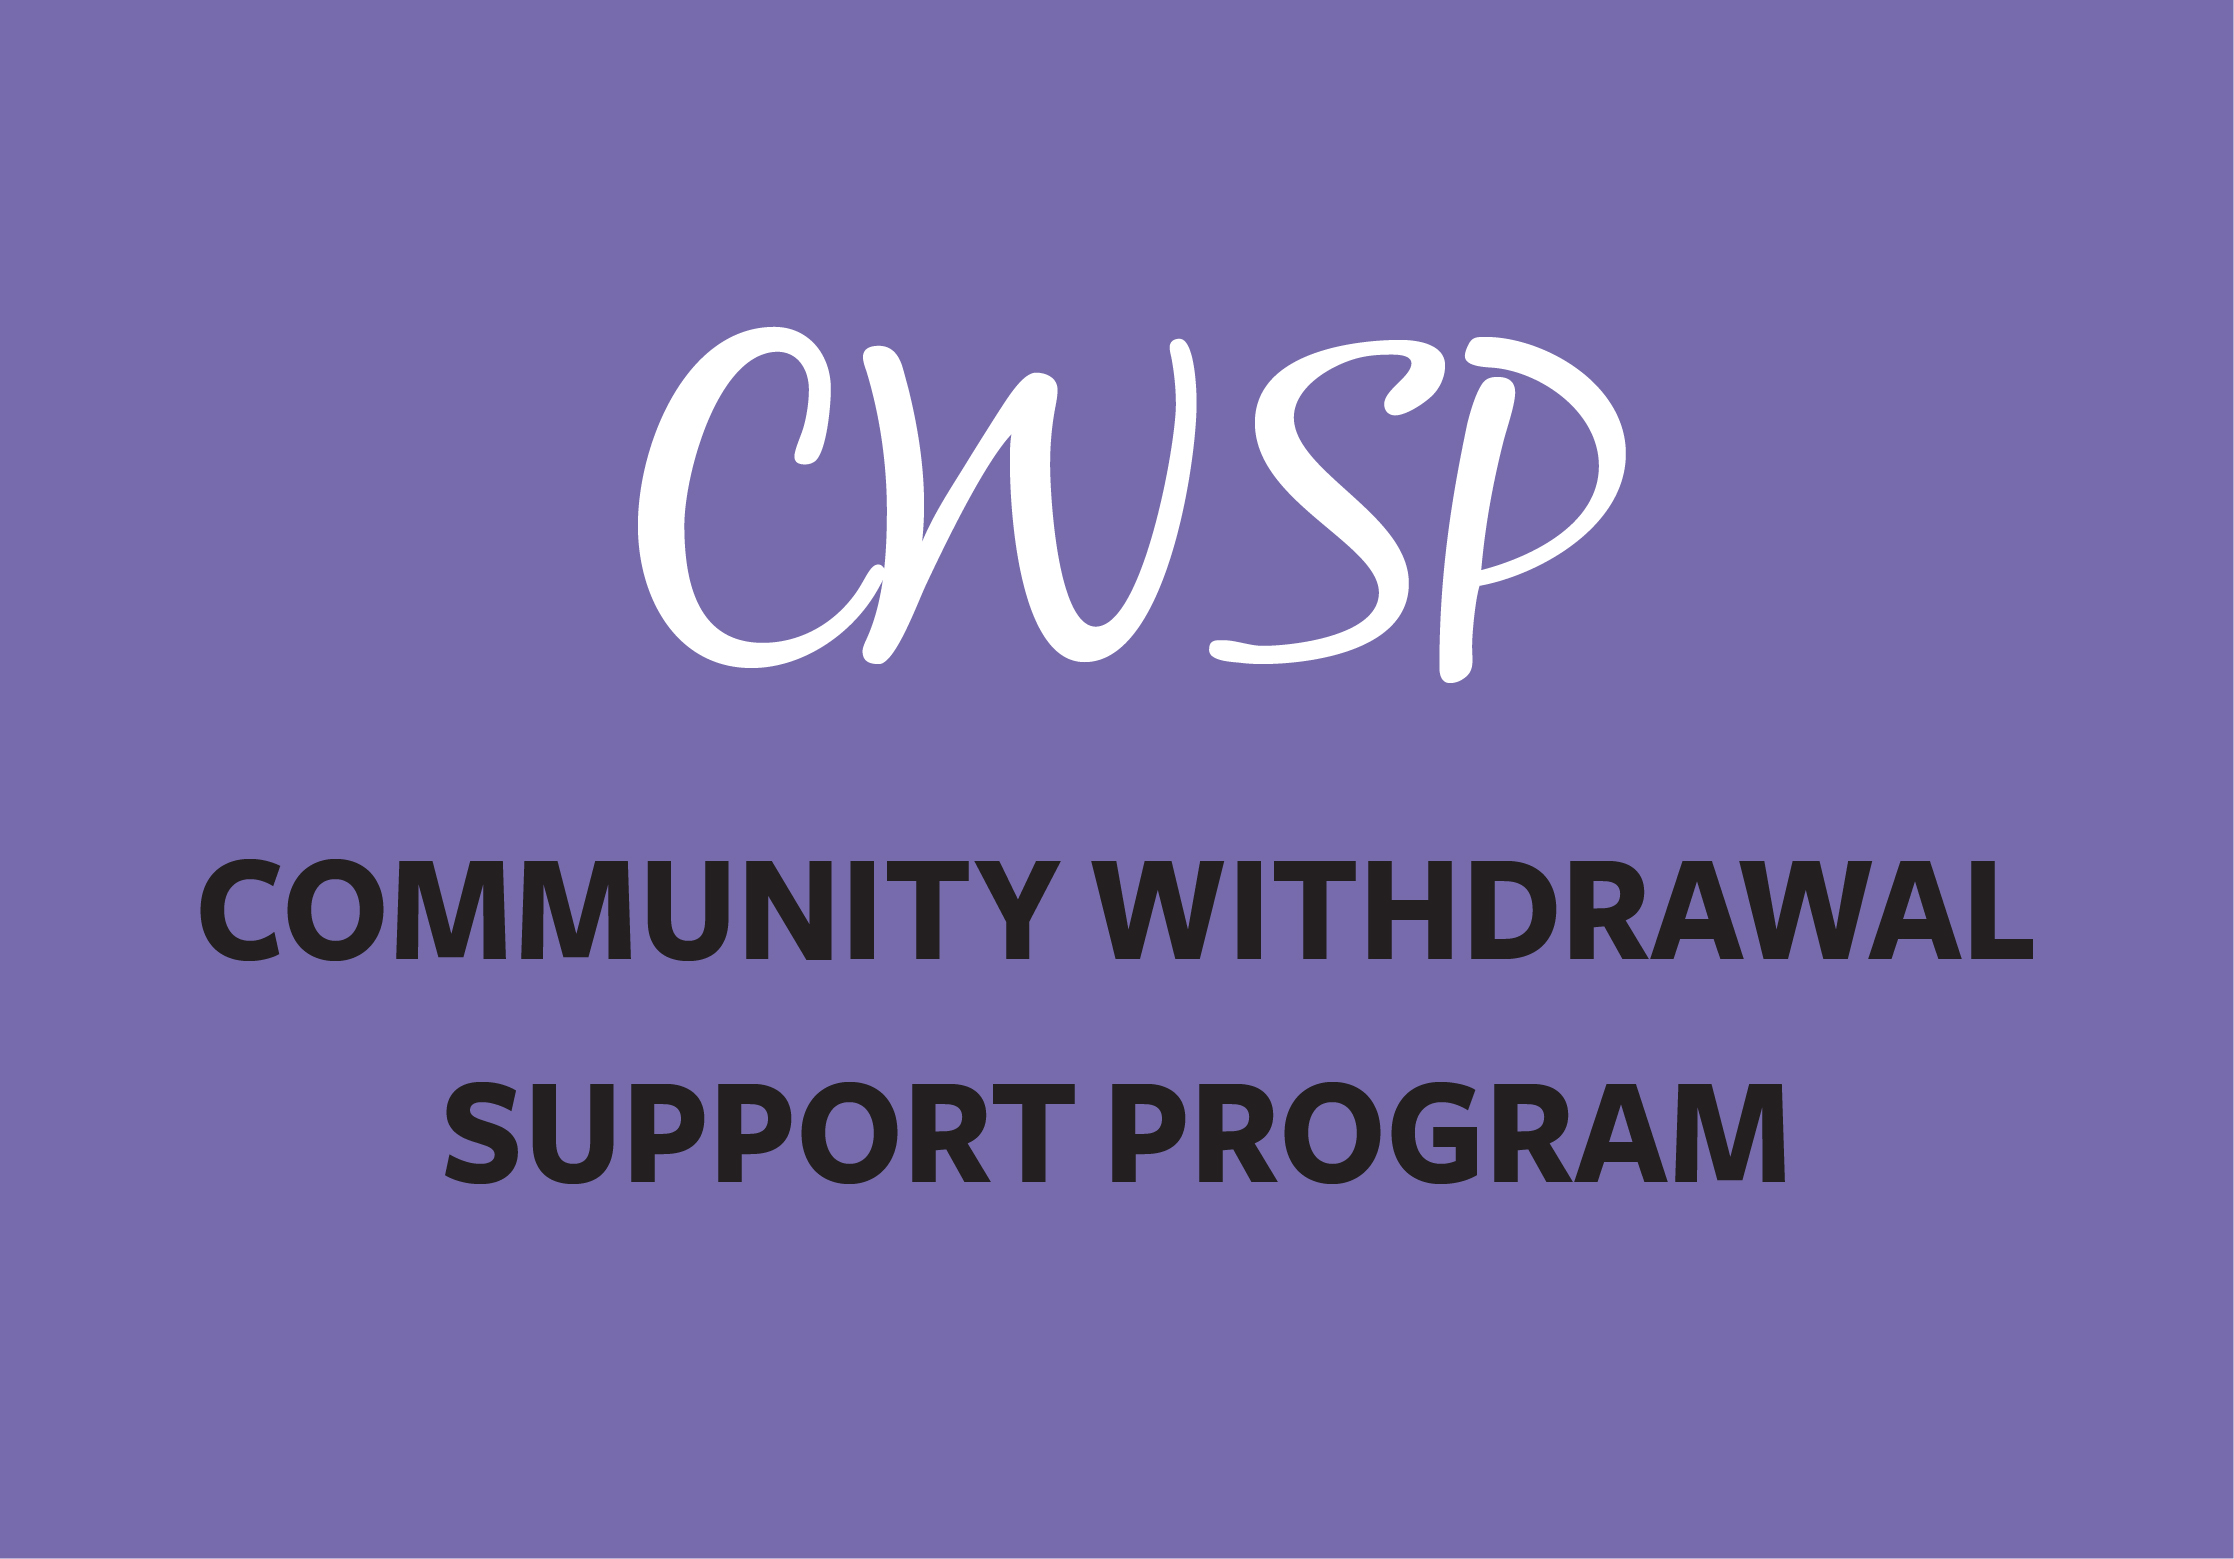 Link to Community Withdrawal Support Program page